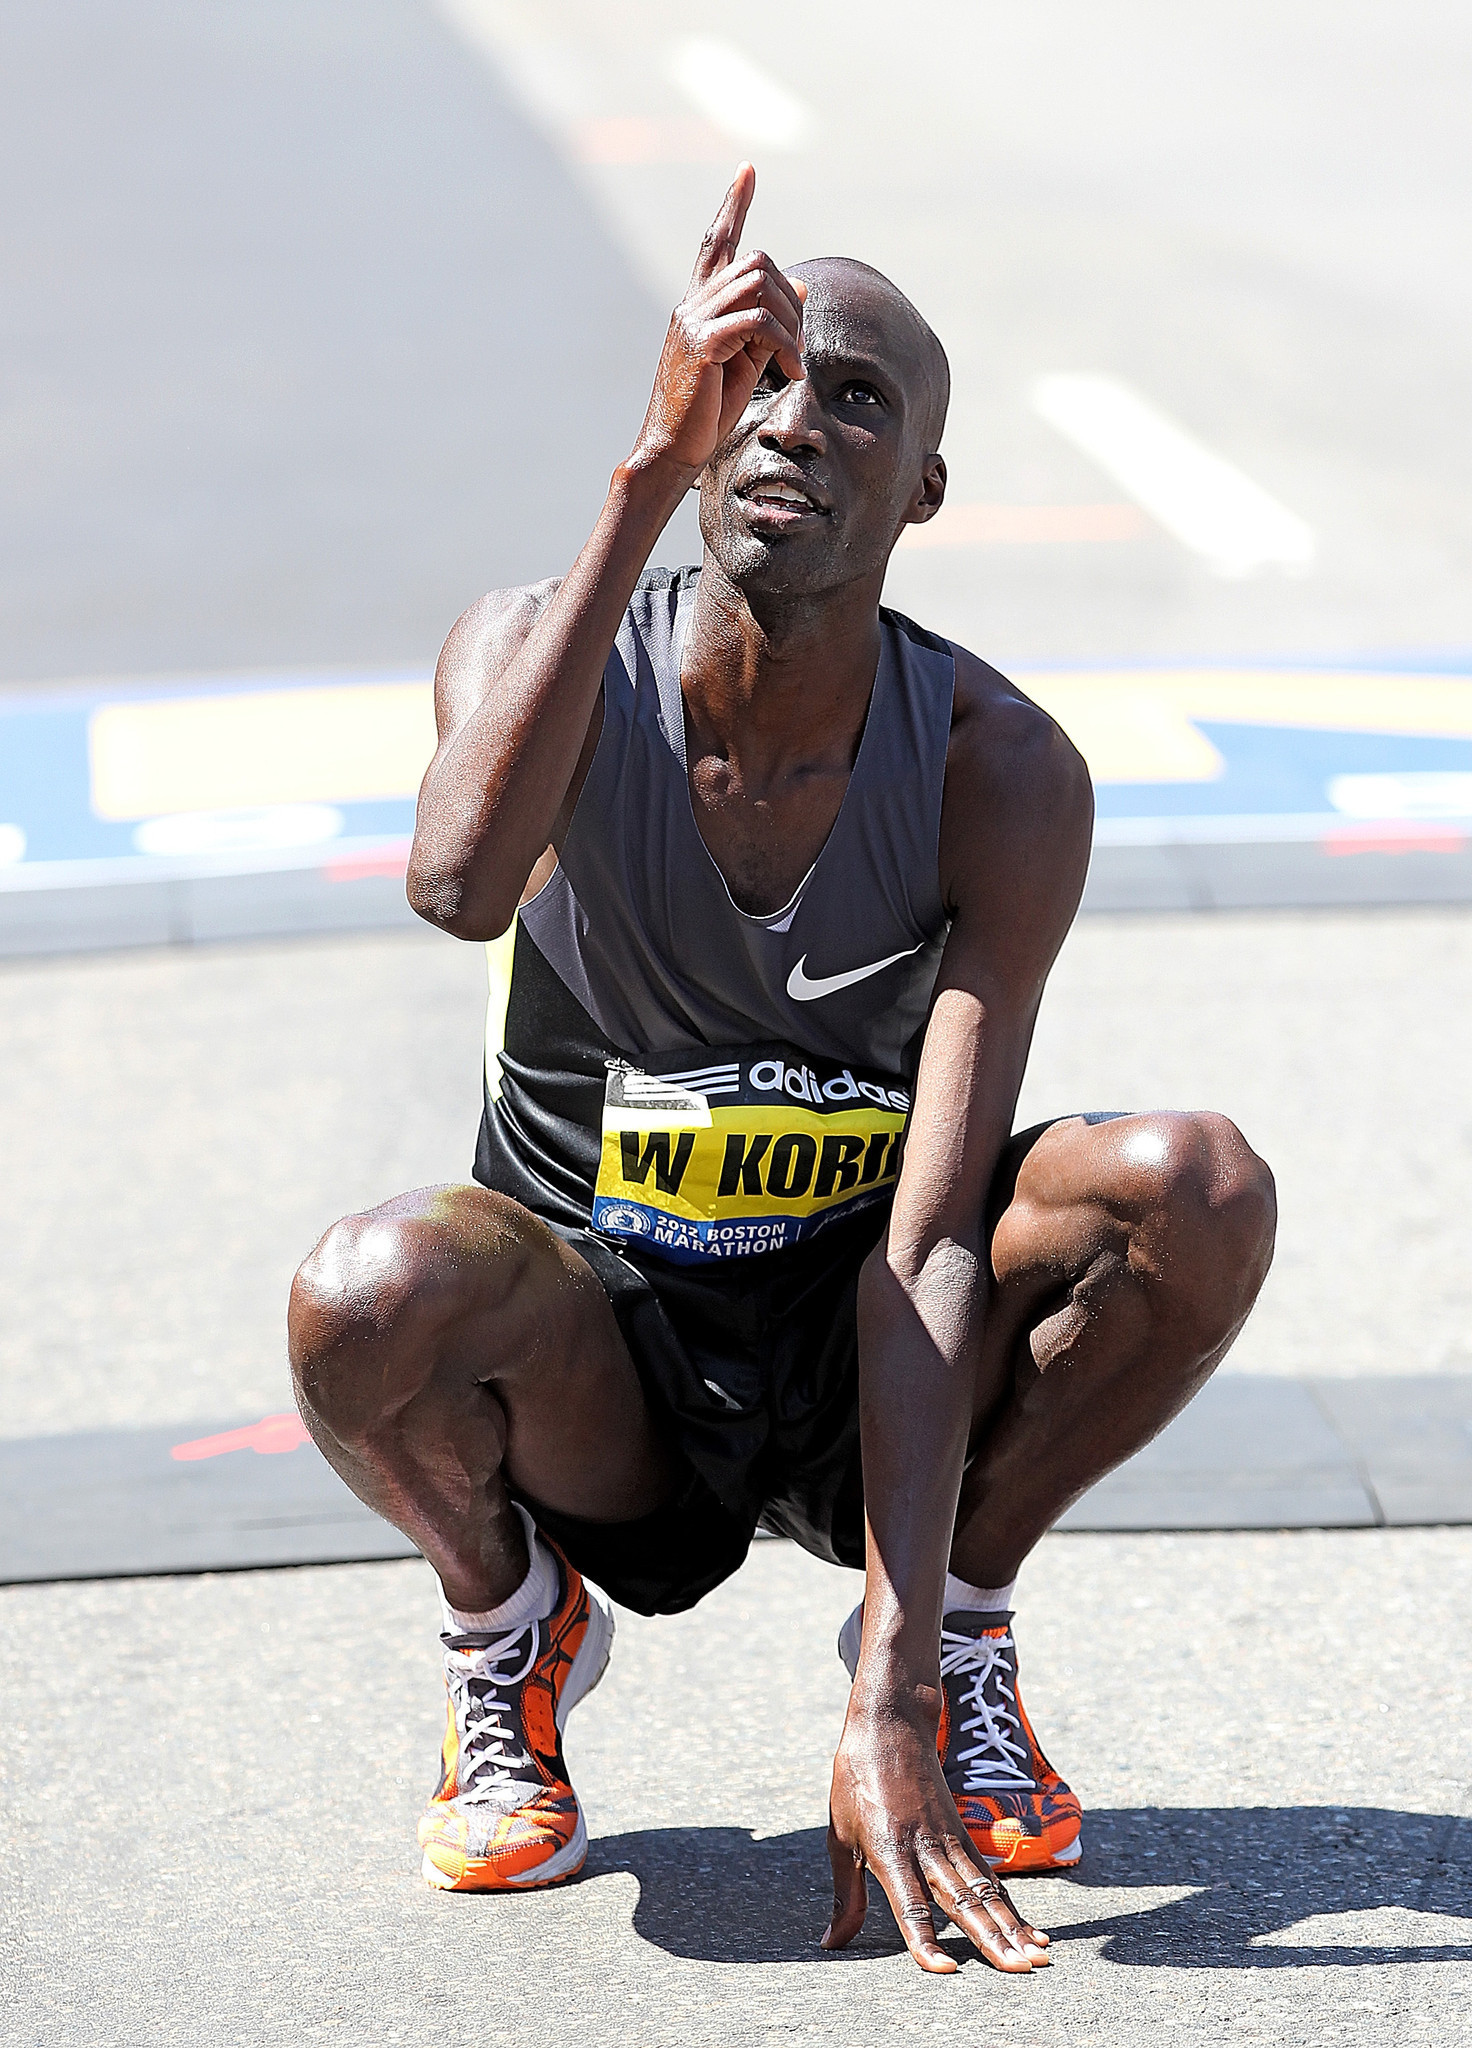 2012 Boston Marathon Champion Wesley Korir is returning this year in hopes of winning the 122nd Annual Marathon